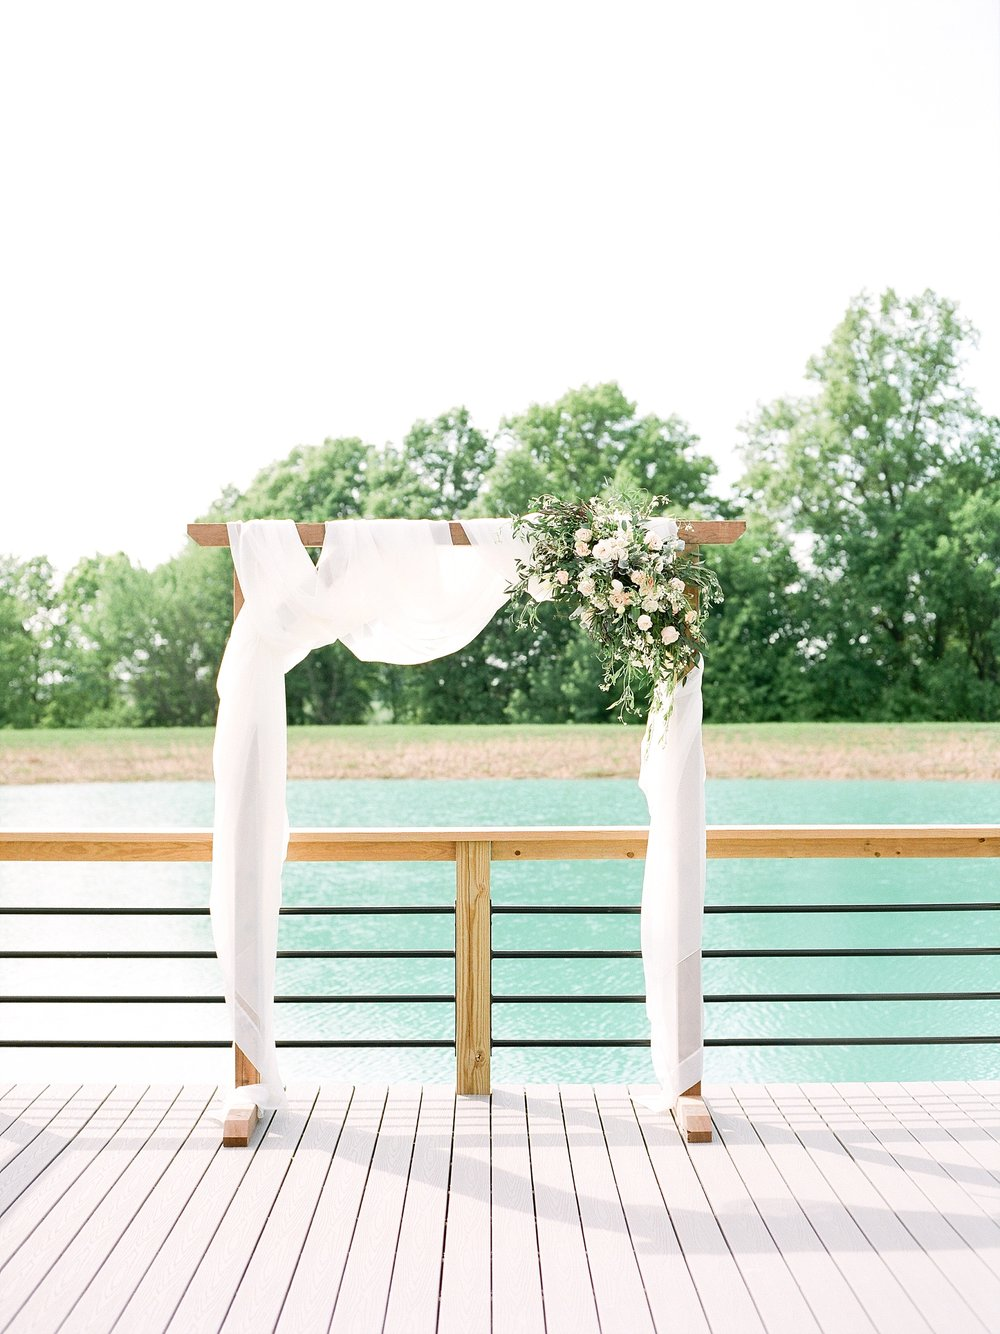 Textural Organic Wedding in All White Venue by Kelsi Kliethermes Wedding Photographer - Missouri, Midwest, and Destinations_0067.jpg